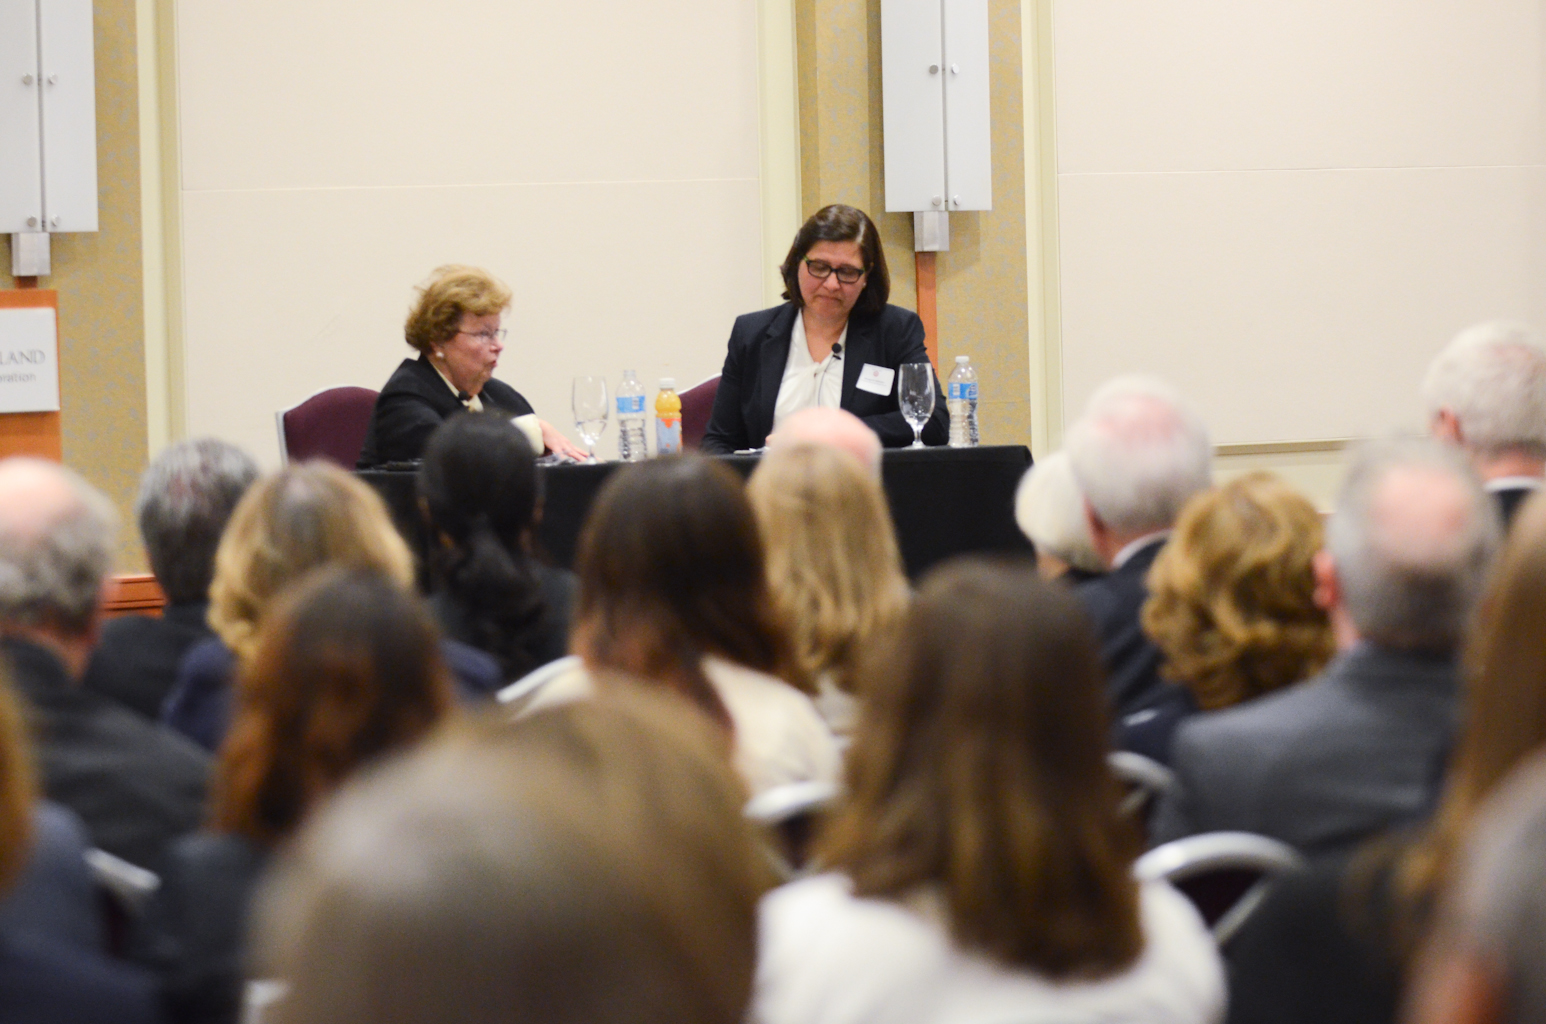 Civic Engagement Symposium - Image 7